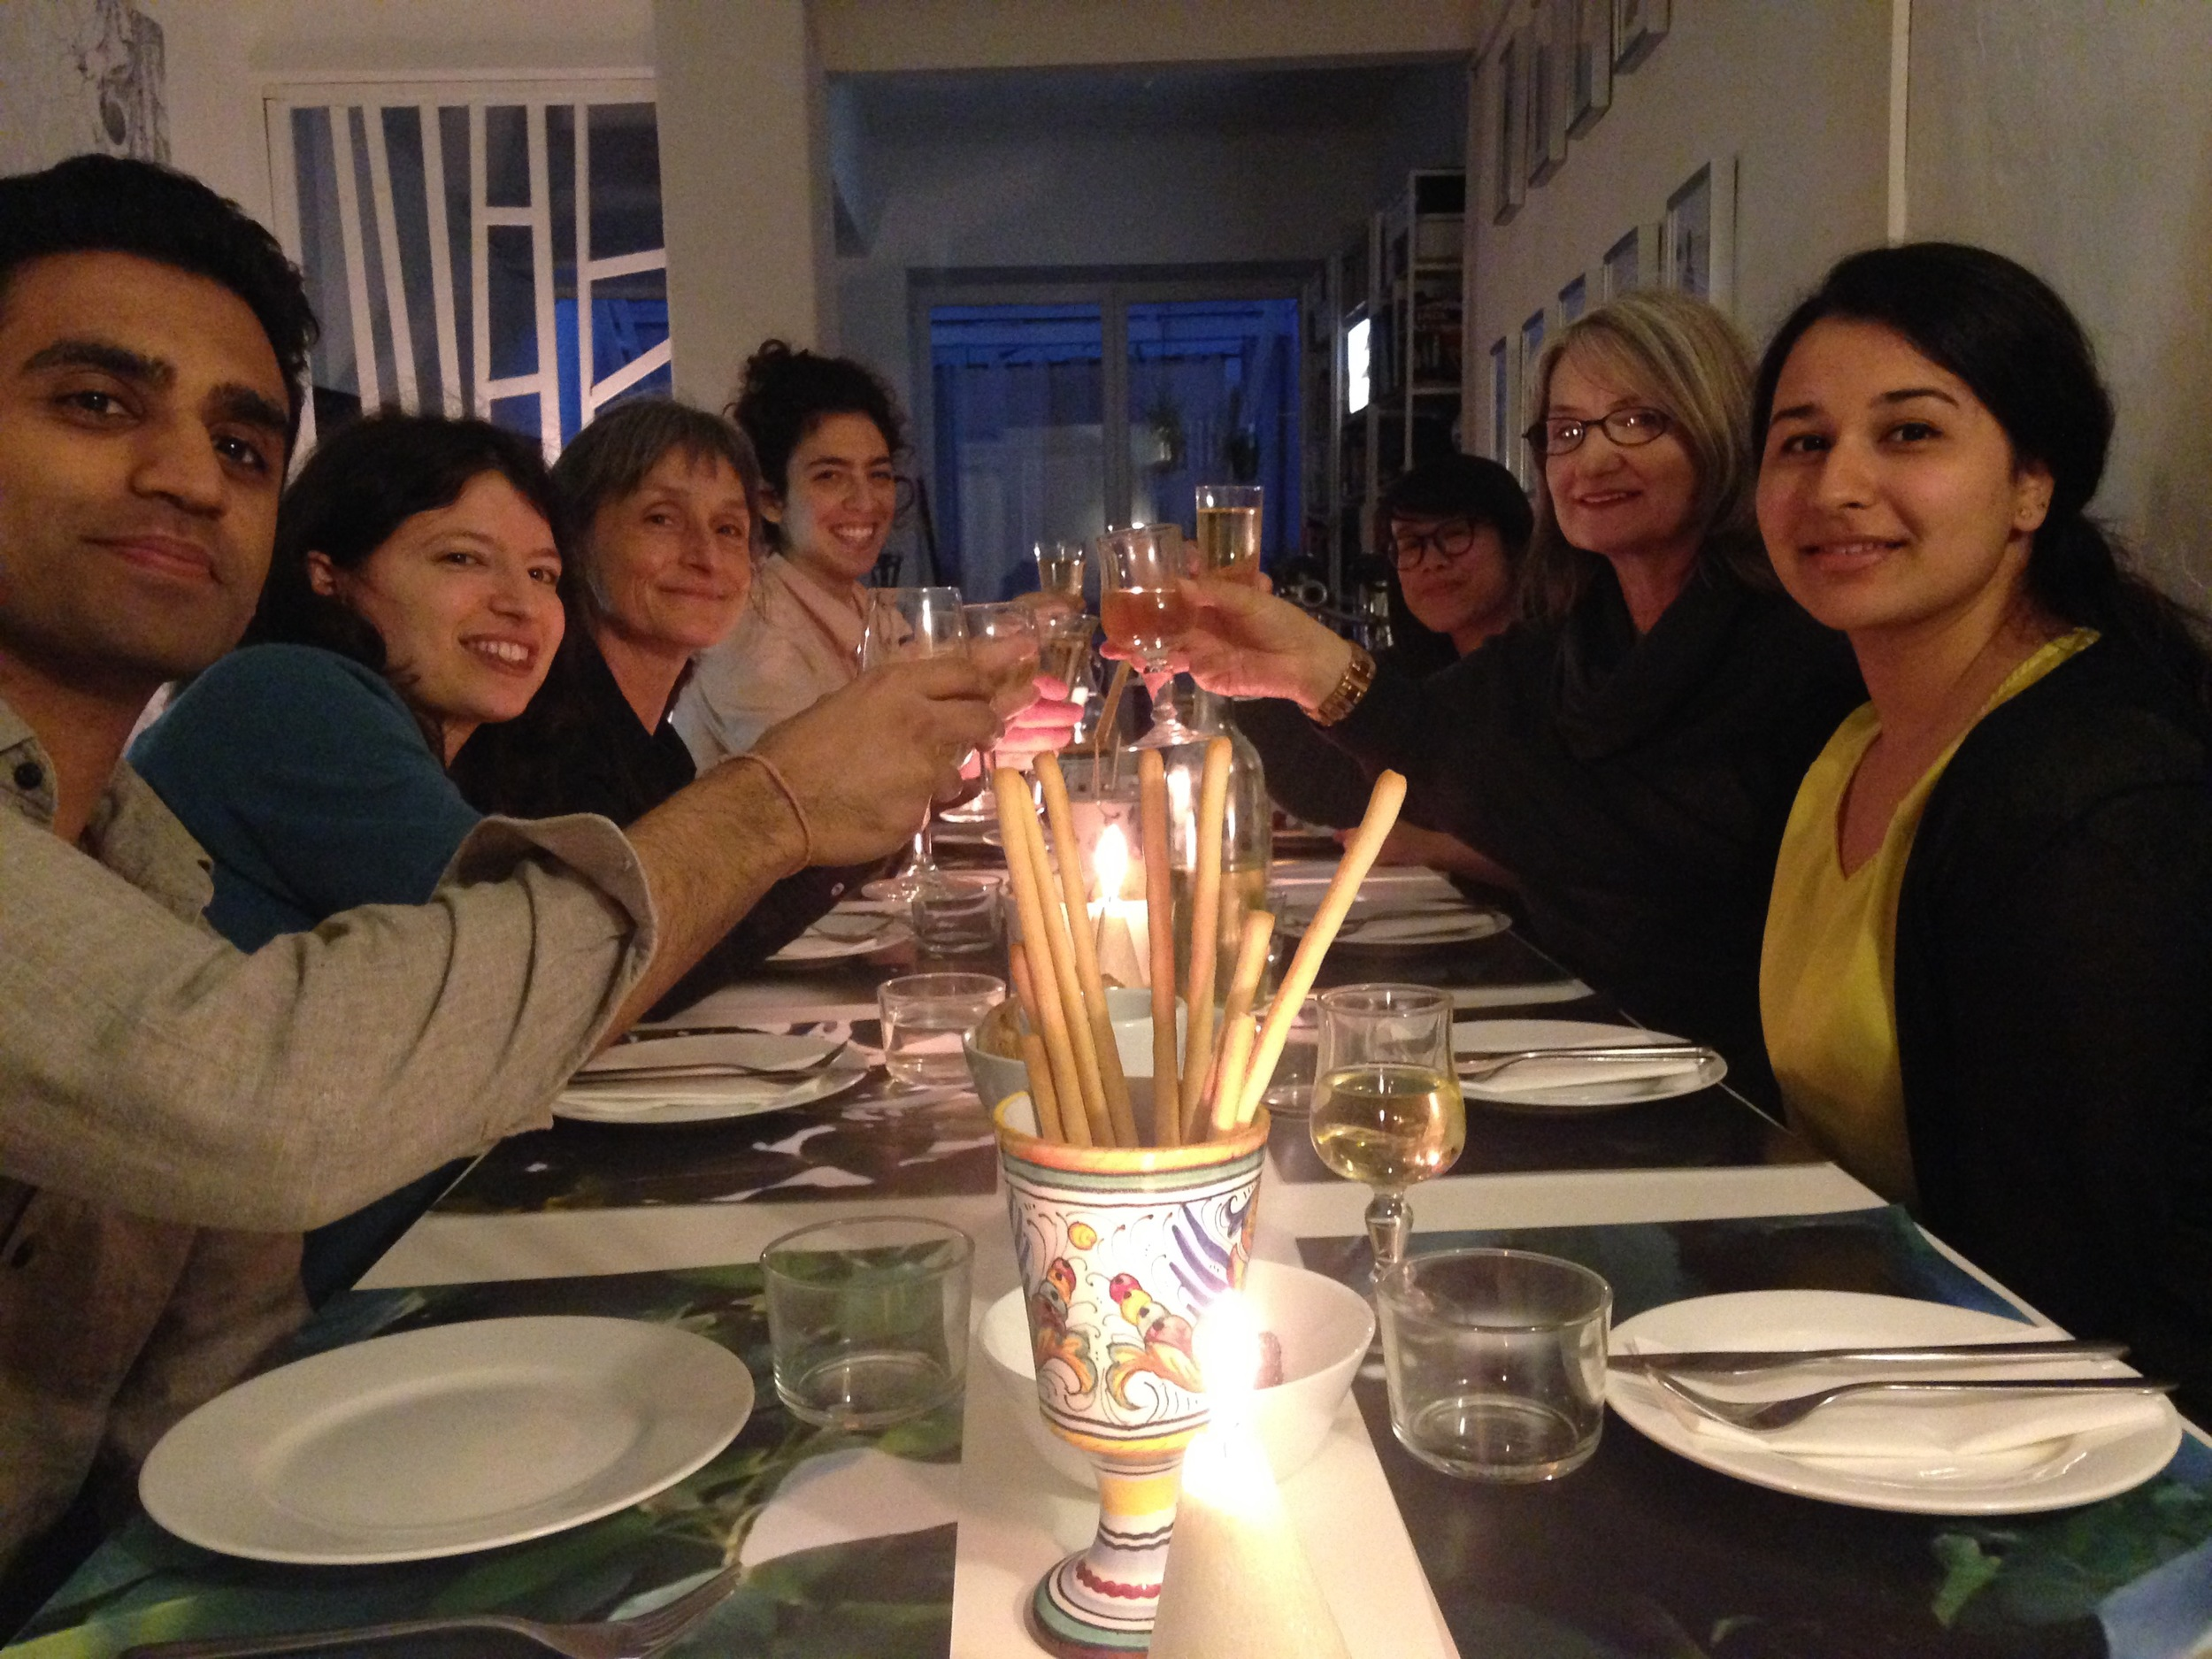 We ended the day with a curated meal by Katia Giuliani, local artist and chef!